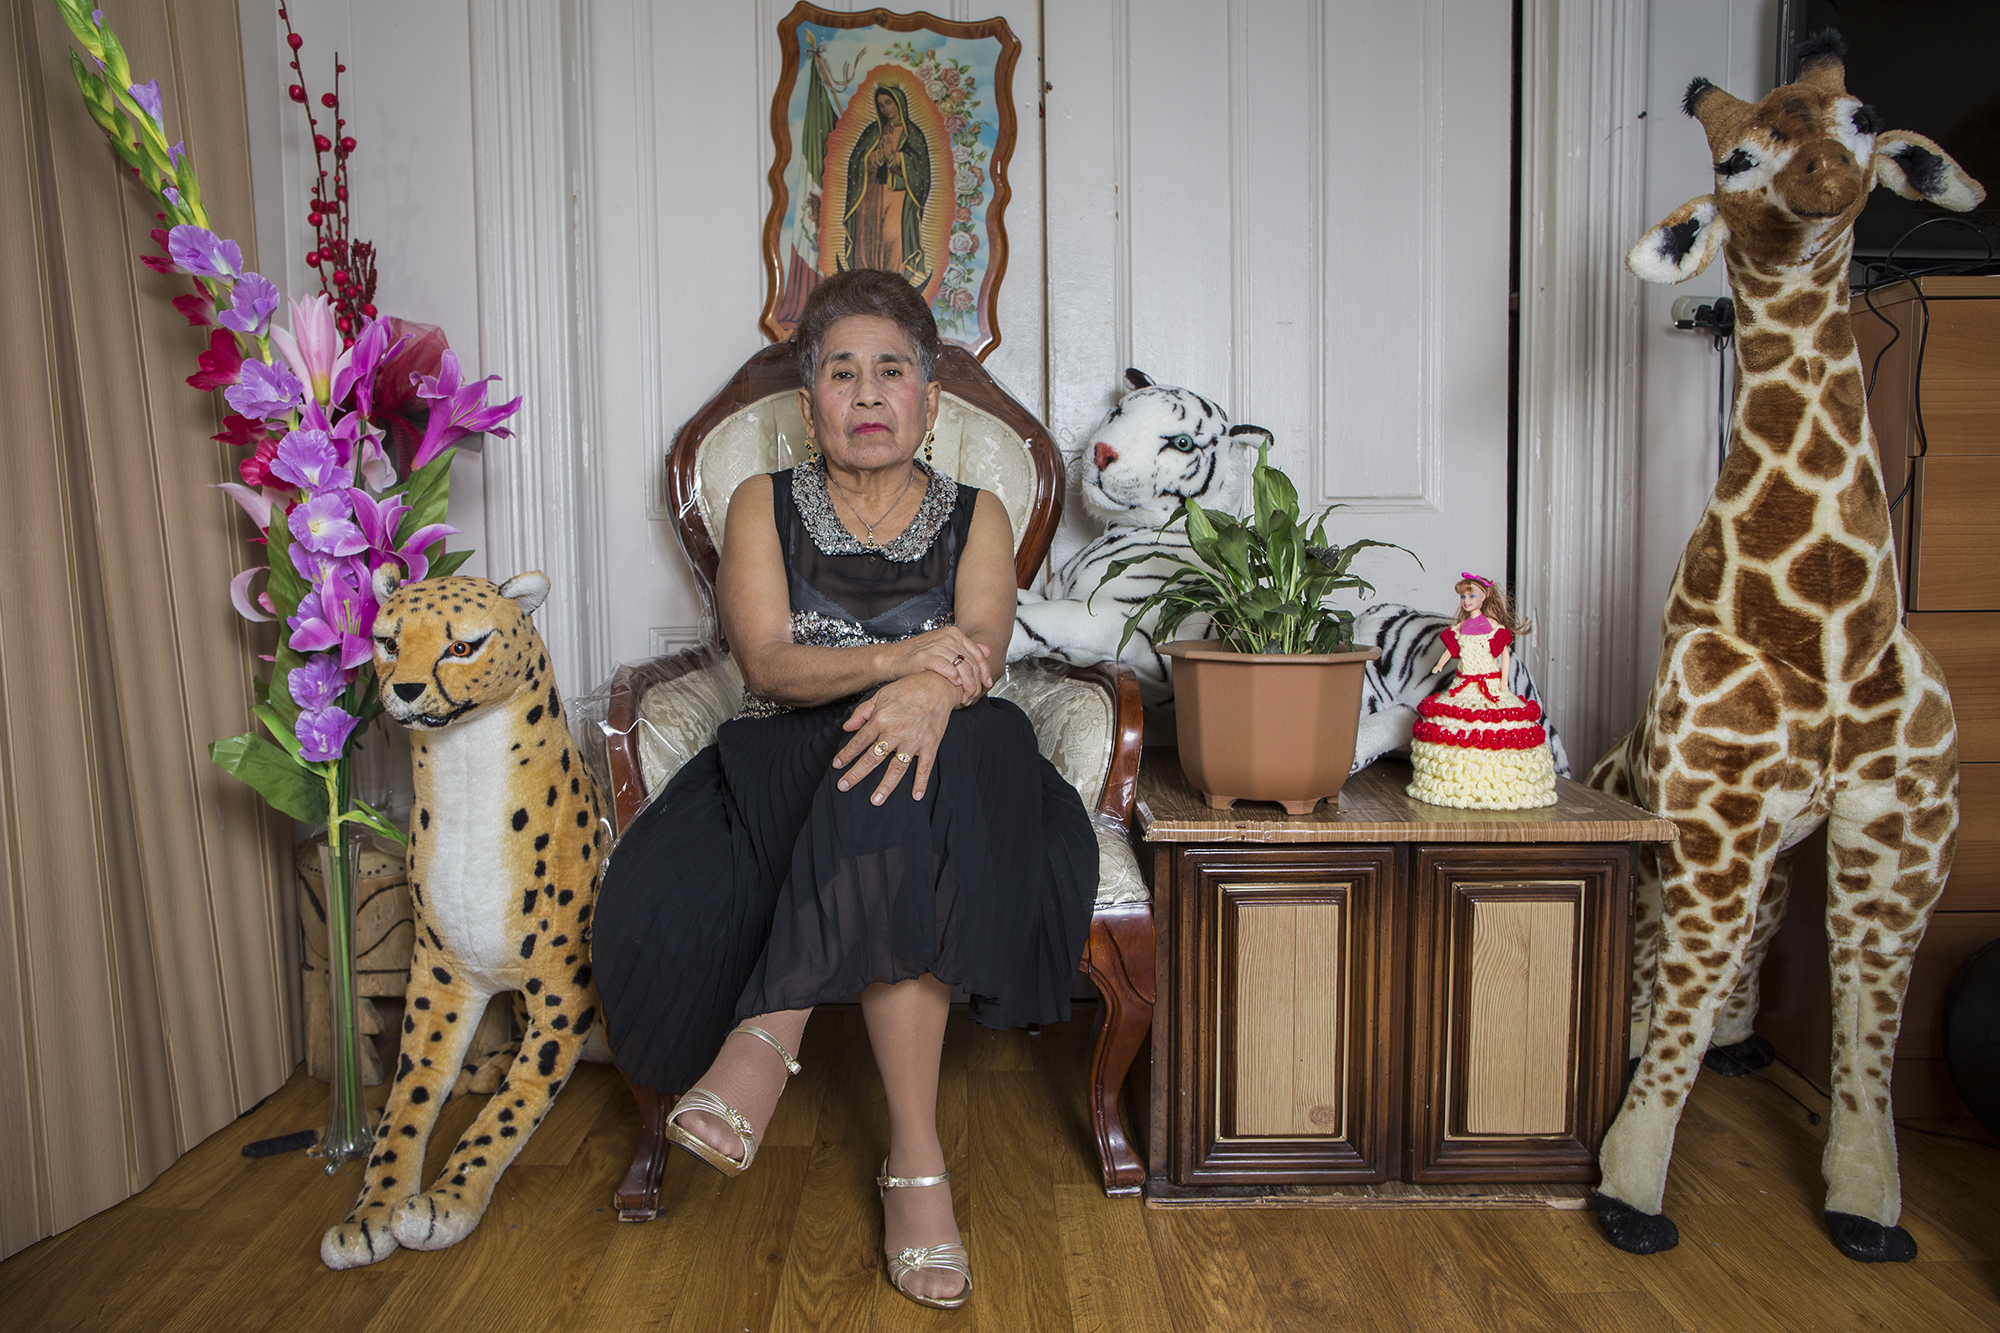 Gisela Bravo Martinez in her apartment at 45th Street in the neighborhood of Sunset Park, Brooklyn, New York. She is from San Bernardino, Acatlán de Osorio, State of Puebla, México. She has been living in New York City for more than two decades working in groceries and factories, though she is a professional seamstress. She is 66 years old and a grandmother of six.